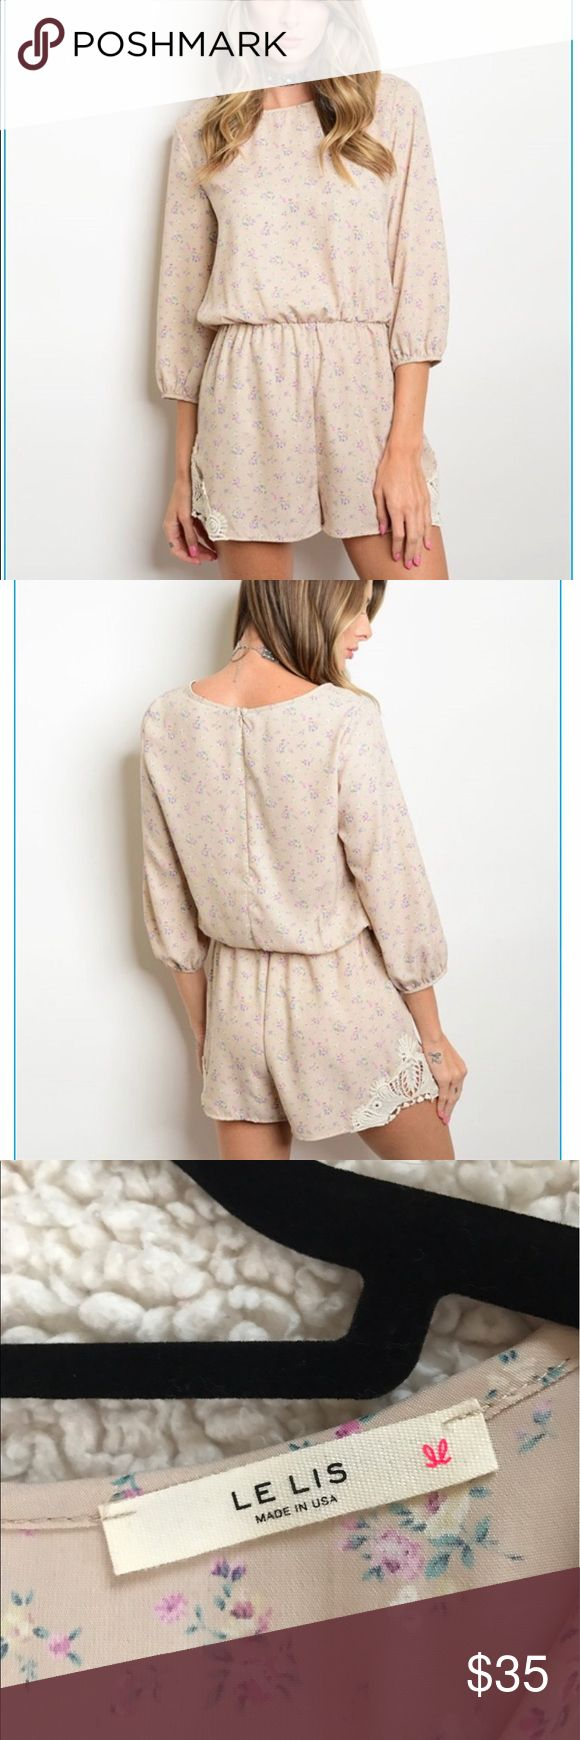 """Crochet Taupe Floral Romper NWOT BRAND NEW Spring inspired ,delicate , ultra feminine light taupe romper with white crochet details . Can be dressed up for a night out or dressed down  for an effortless chic look. Made in USA .  Fabric- 100% polyester  L about 30"""" ; B about 32 ; W about 25 for size S In stock S-2; M-2; L-2.  Price is firm unless bundled.Bundle discount is 15% of 2 or more items 🙃 Other"""